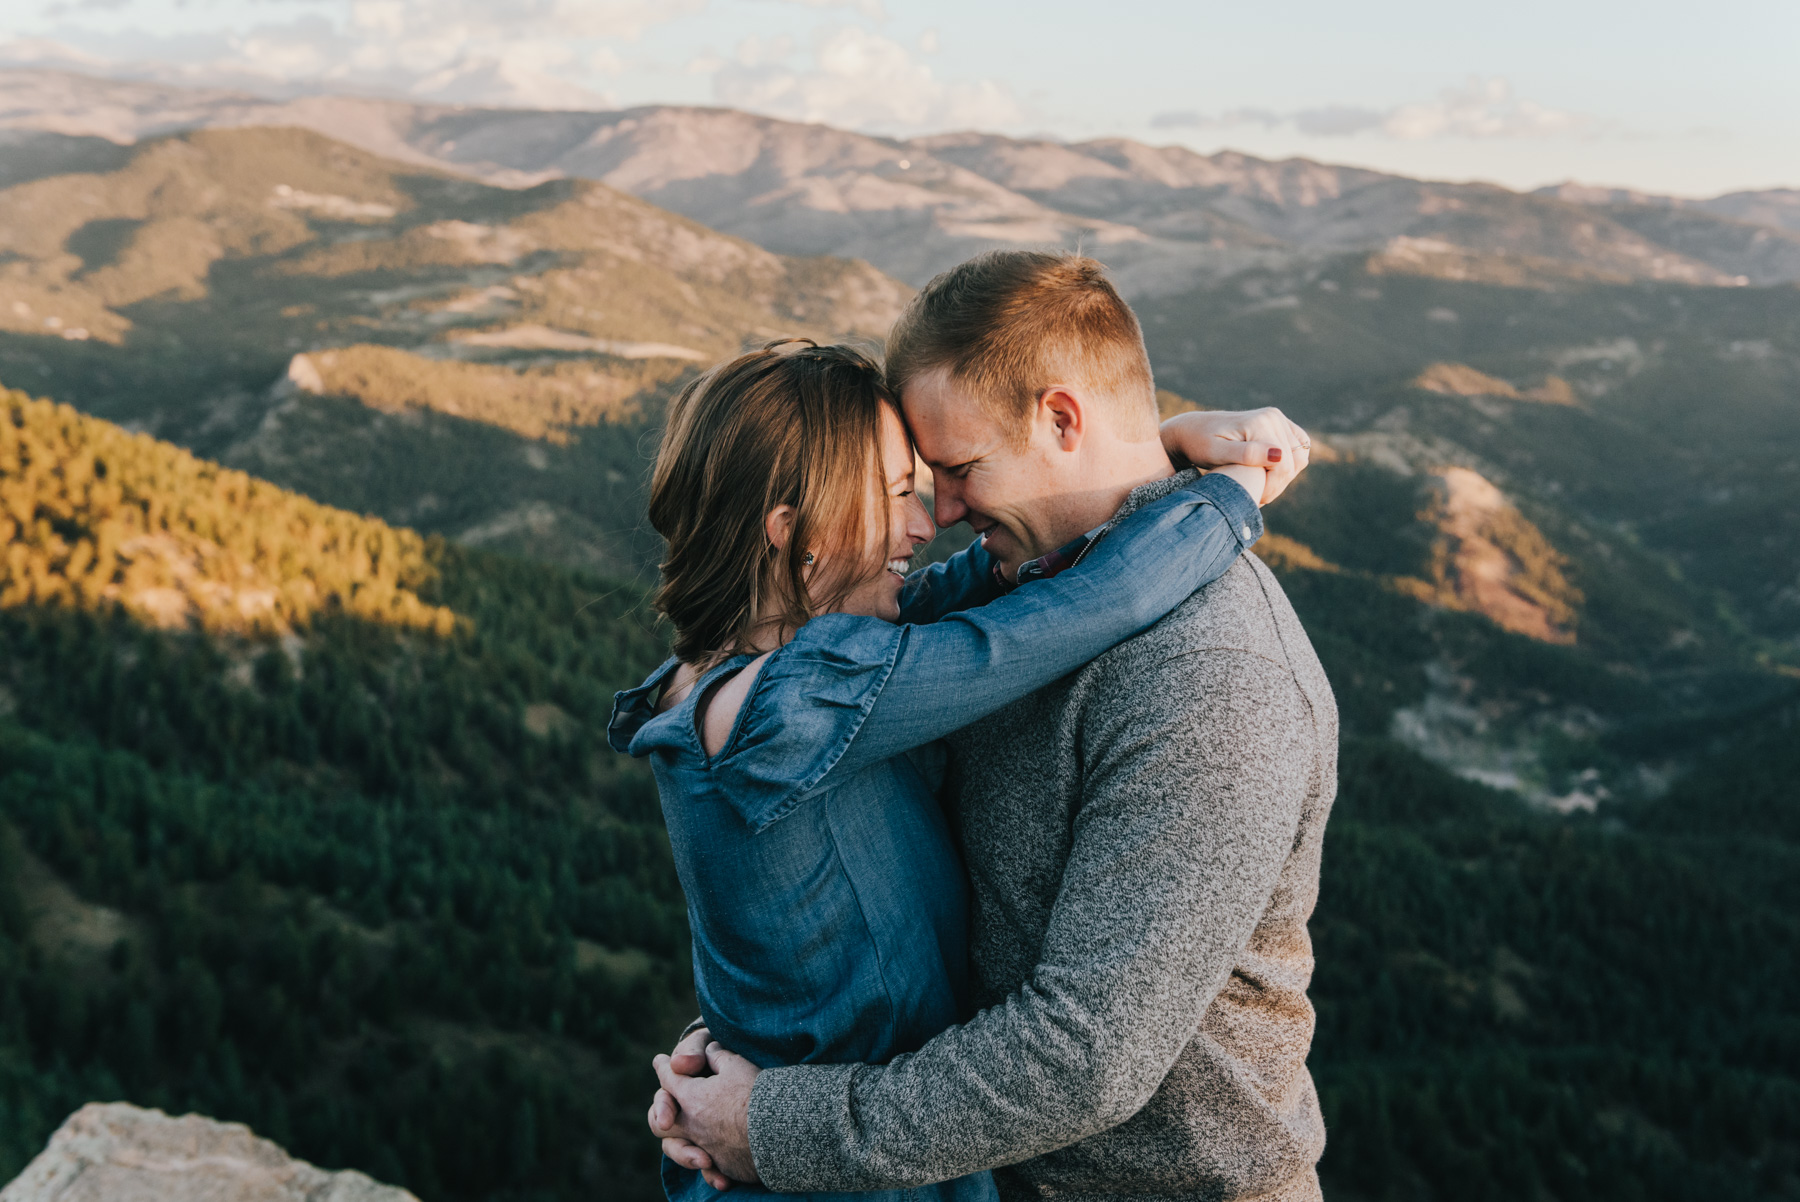 Michelle & Dain at their Lost Gulch Overlook engagement session near Boulder, Colorado.